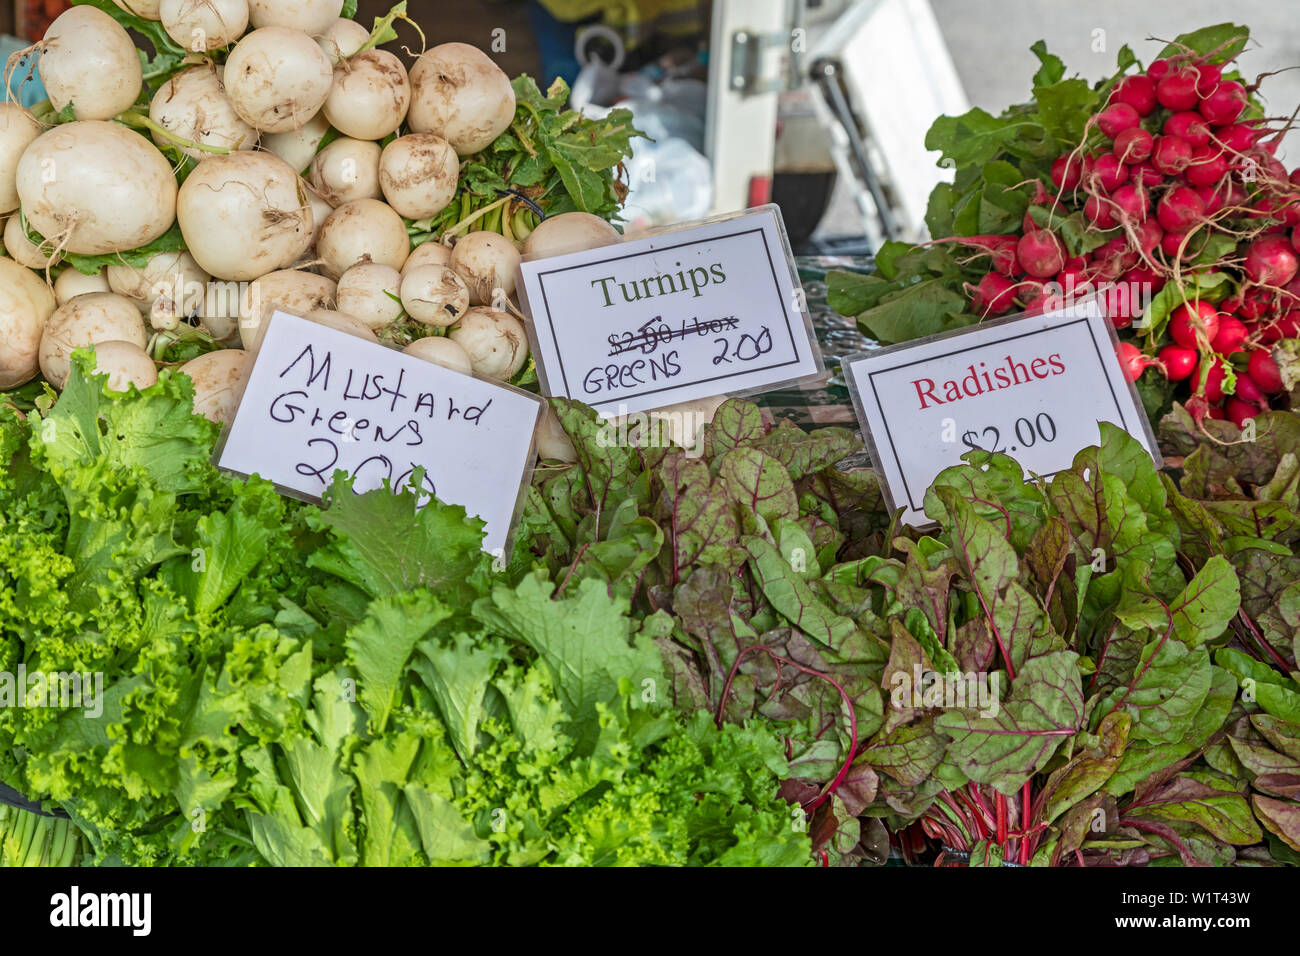 Arkansas Farm Stock Photos & Arkansas Farm Stock Images - Alamy